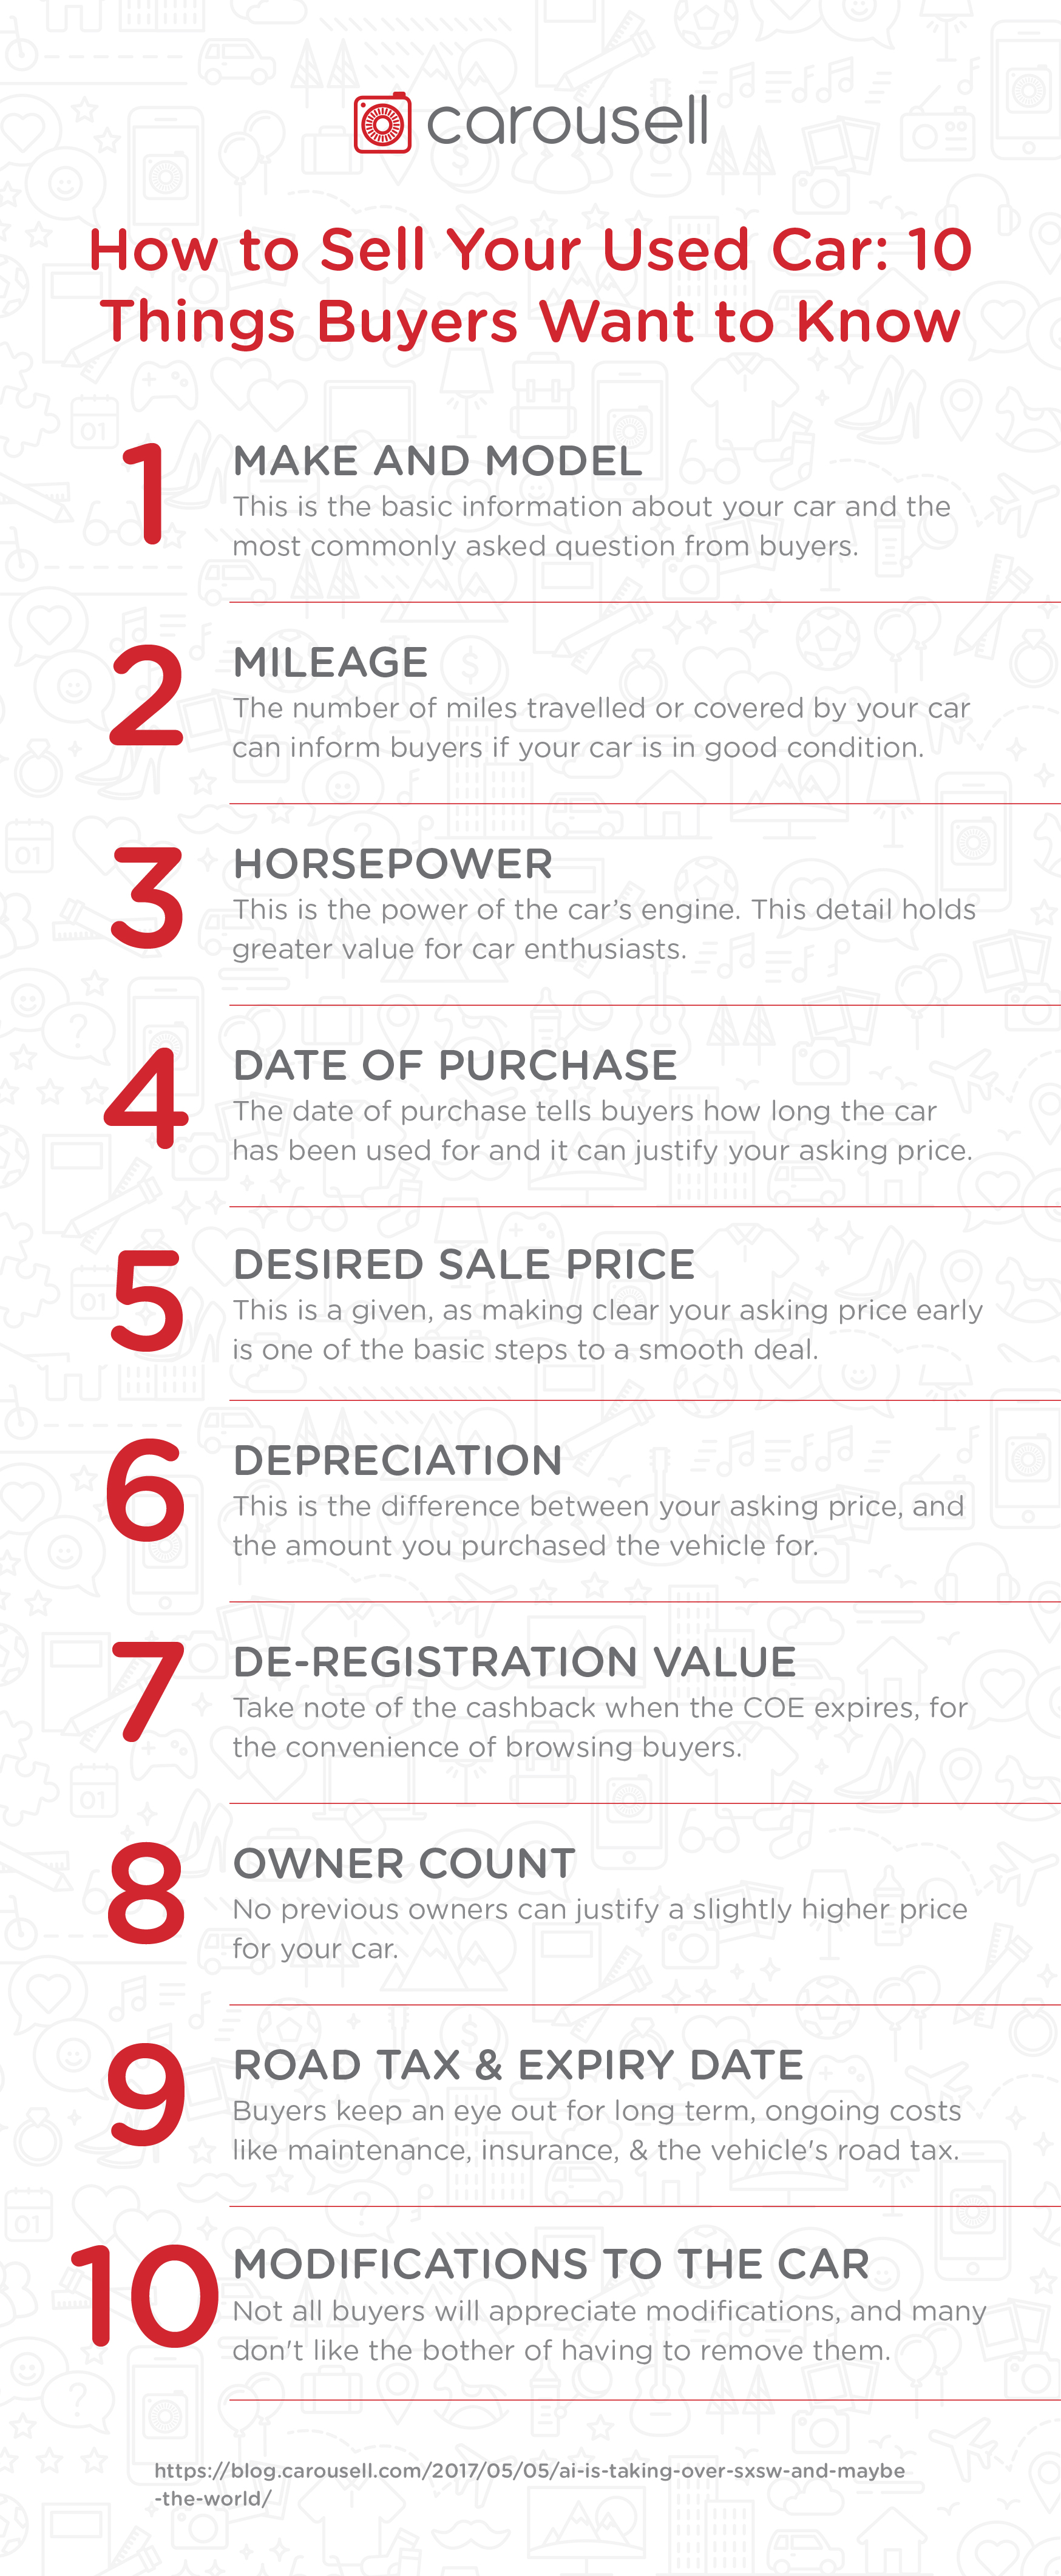 How to Sell Your Used Car: 10 Details Buyers Want to Know